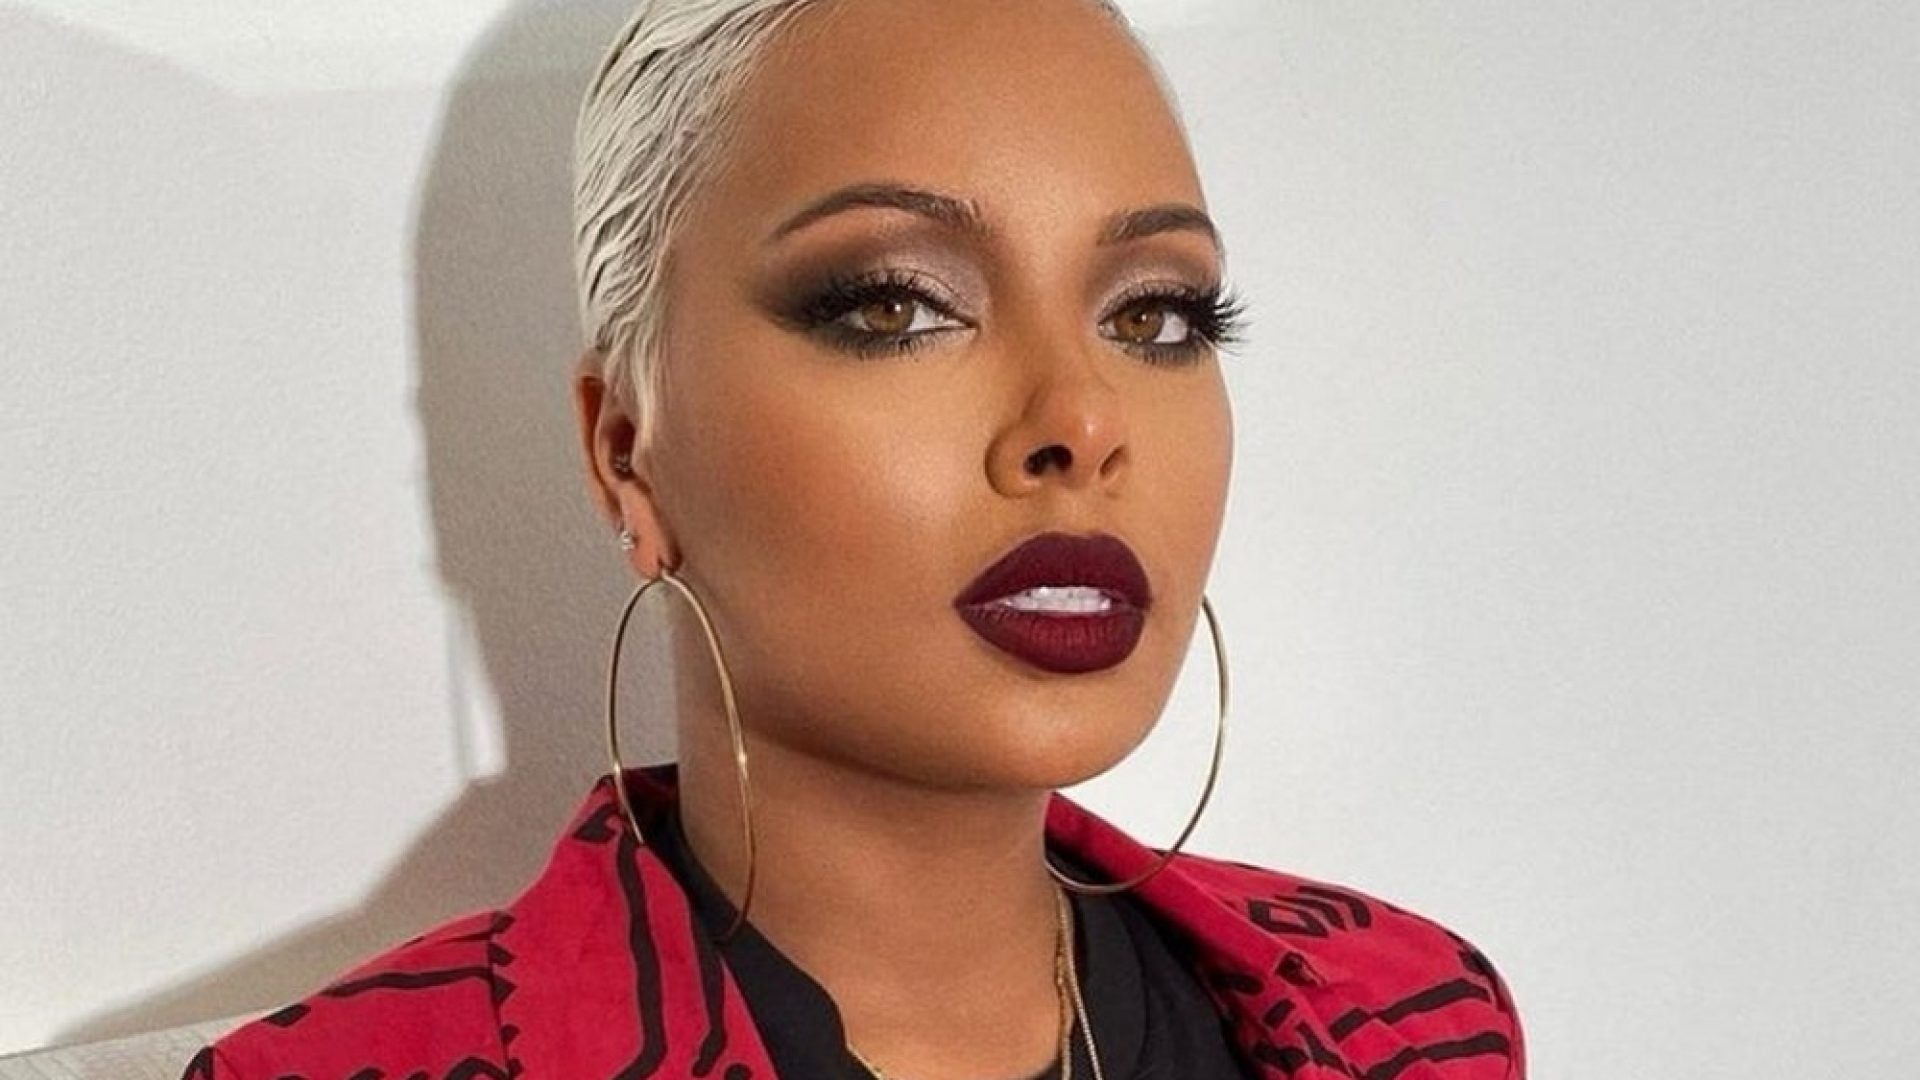 Eva Marcille's Photo Featuring Marley Rae And Santa Claus Makes Fans Smile - See It Here